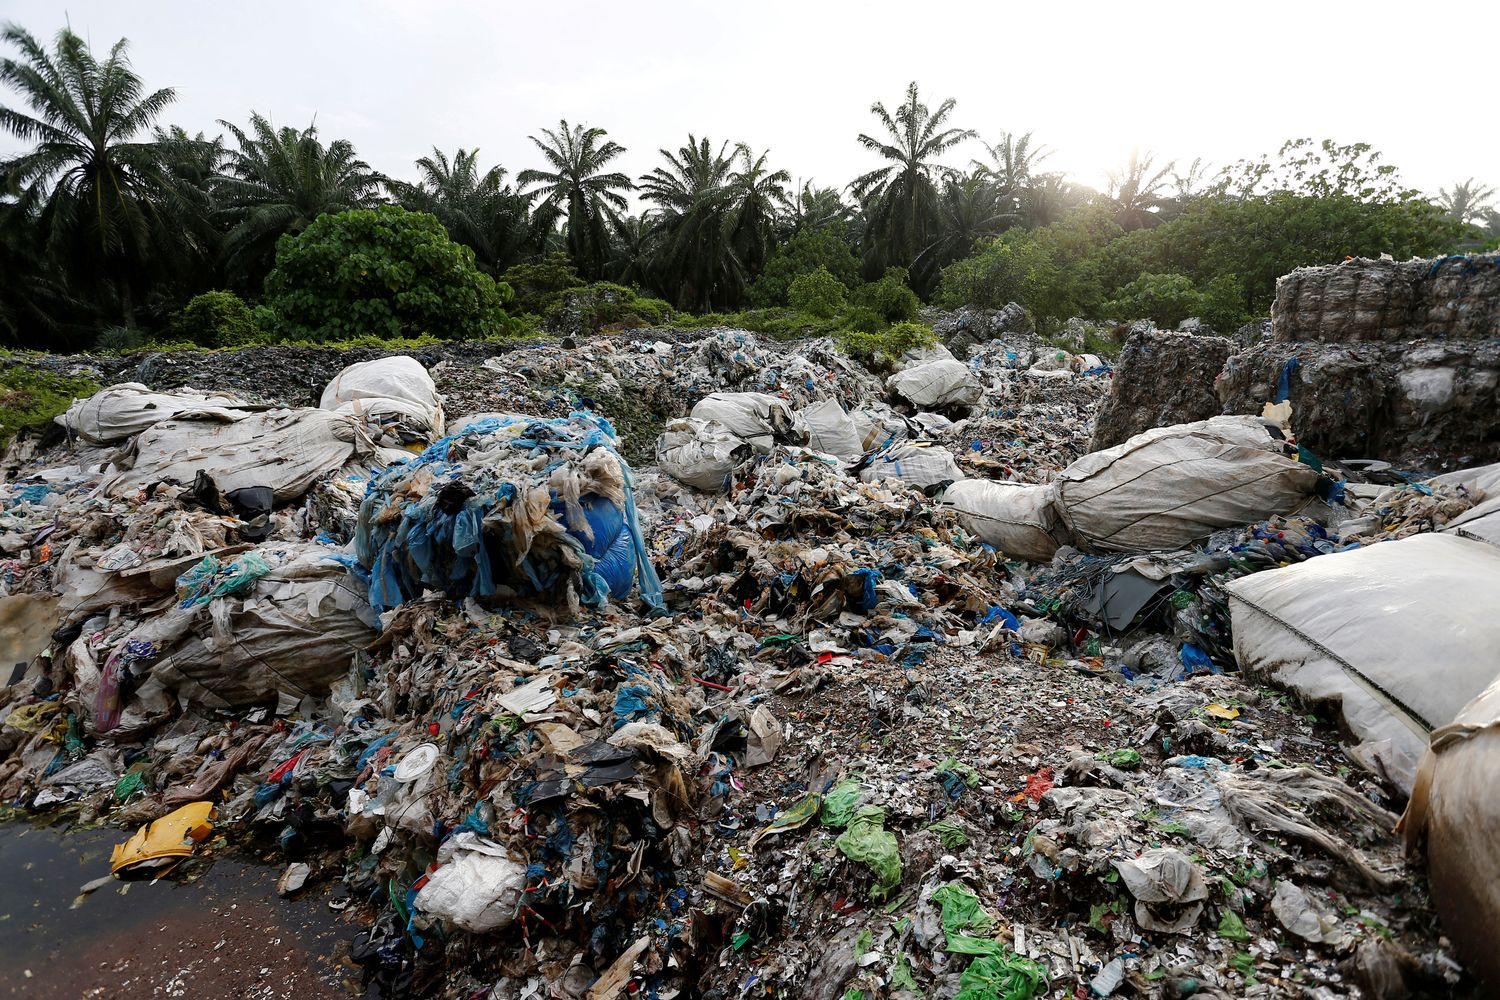 Scrap from an illegal plastic recycling factory are dumped near a palm oil plantation in Jenjarom, Kuala Langat, Malaysia, in 2018. (Reuters photo)